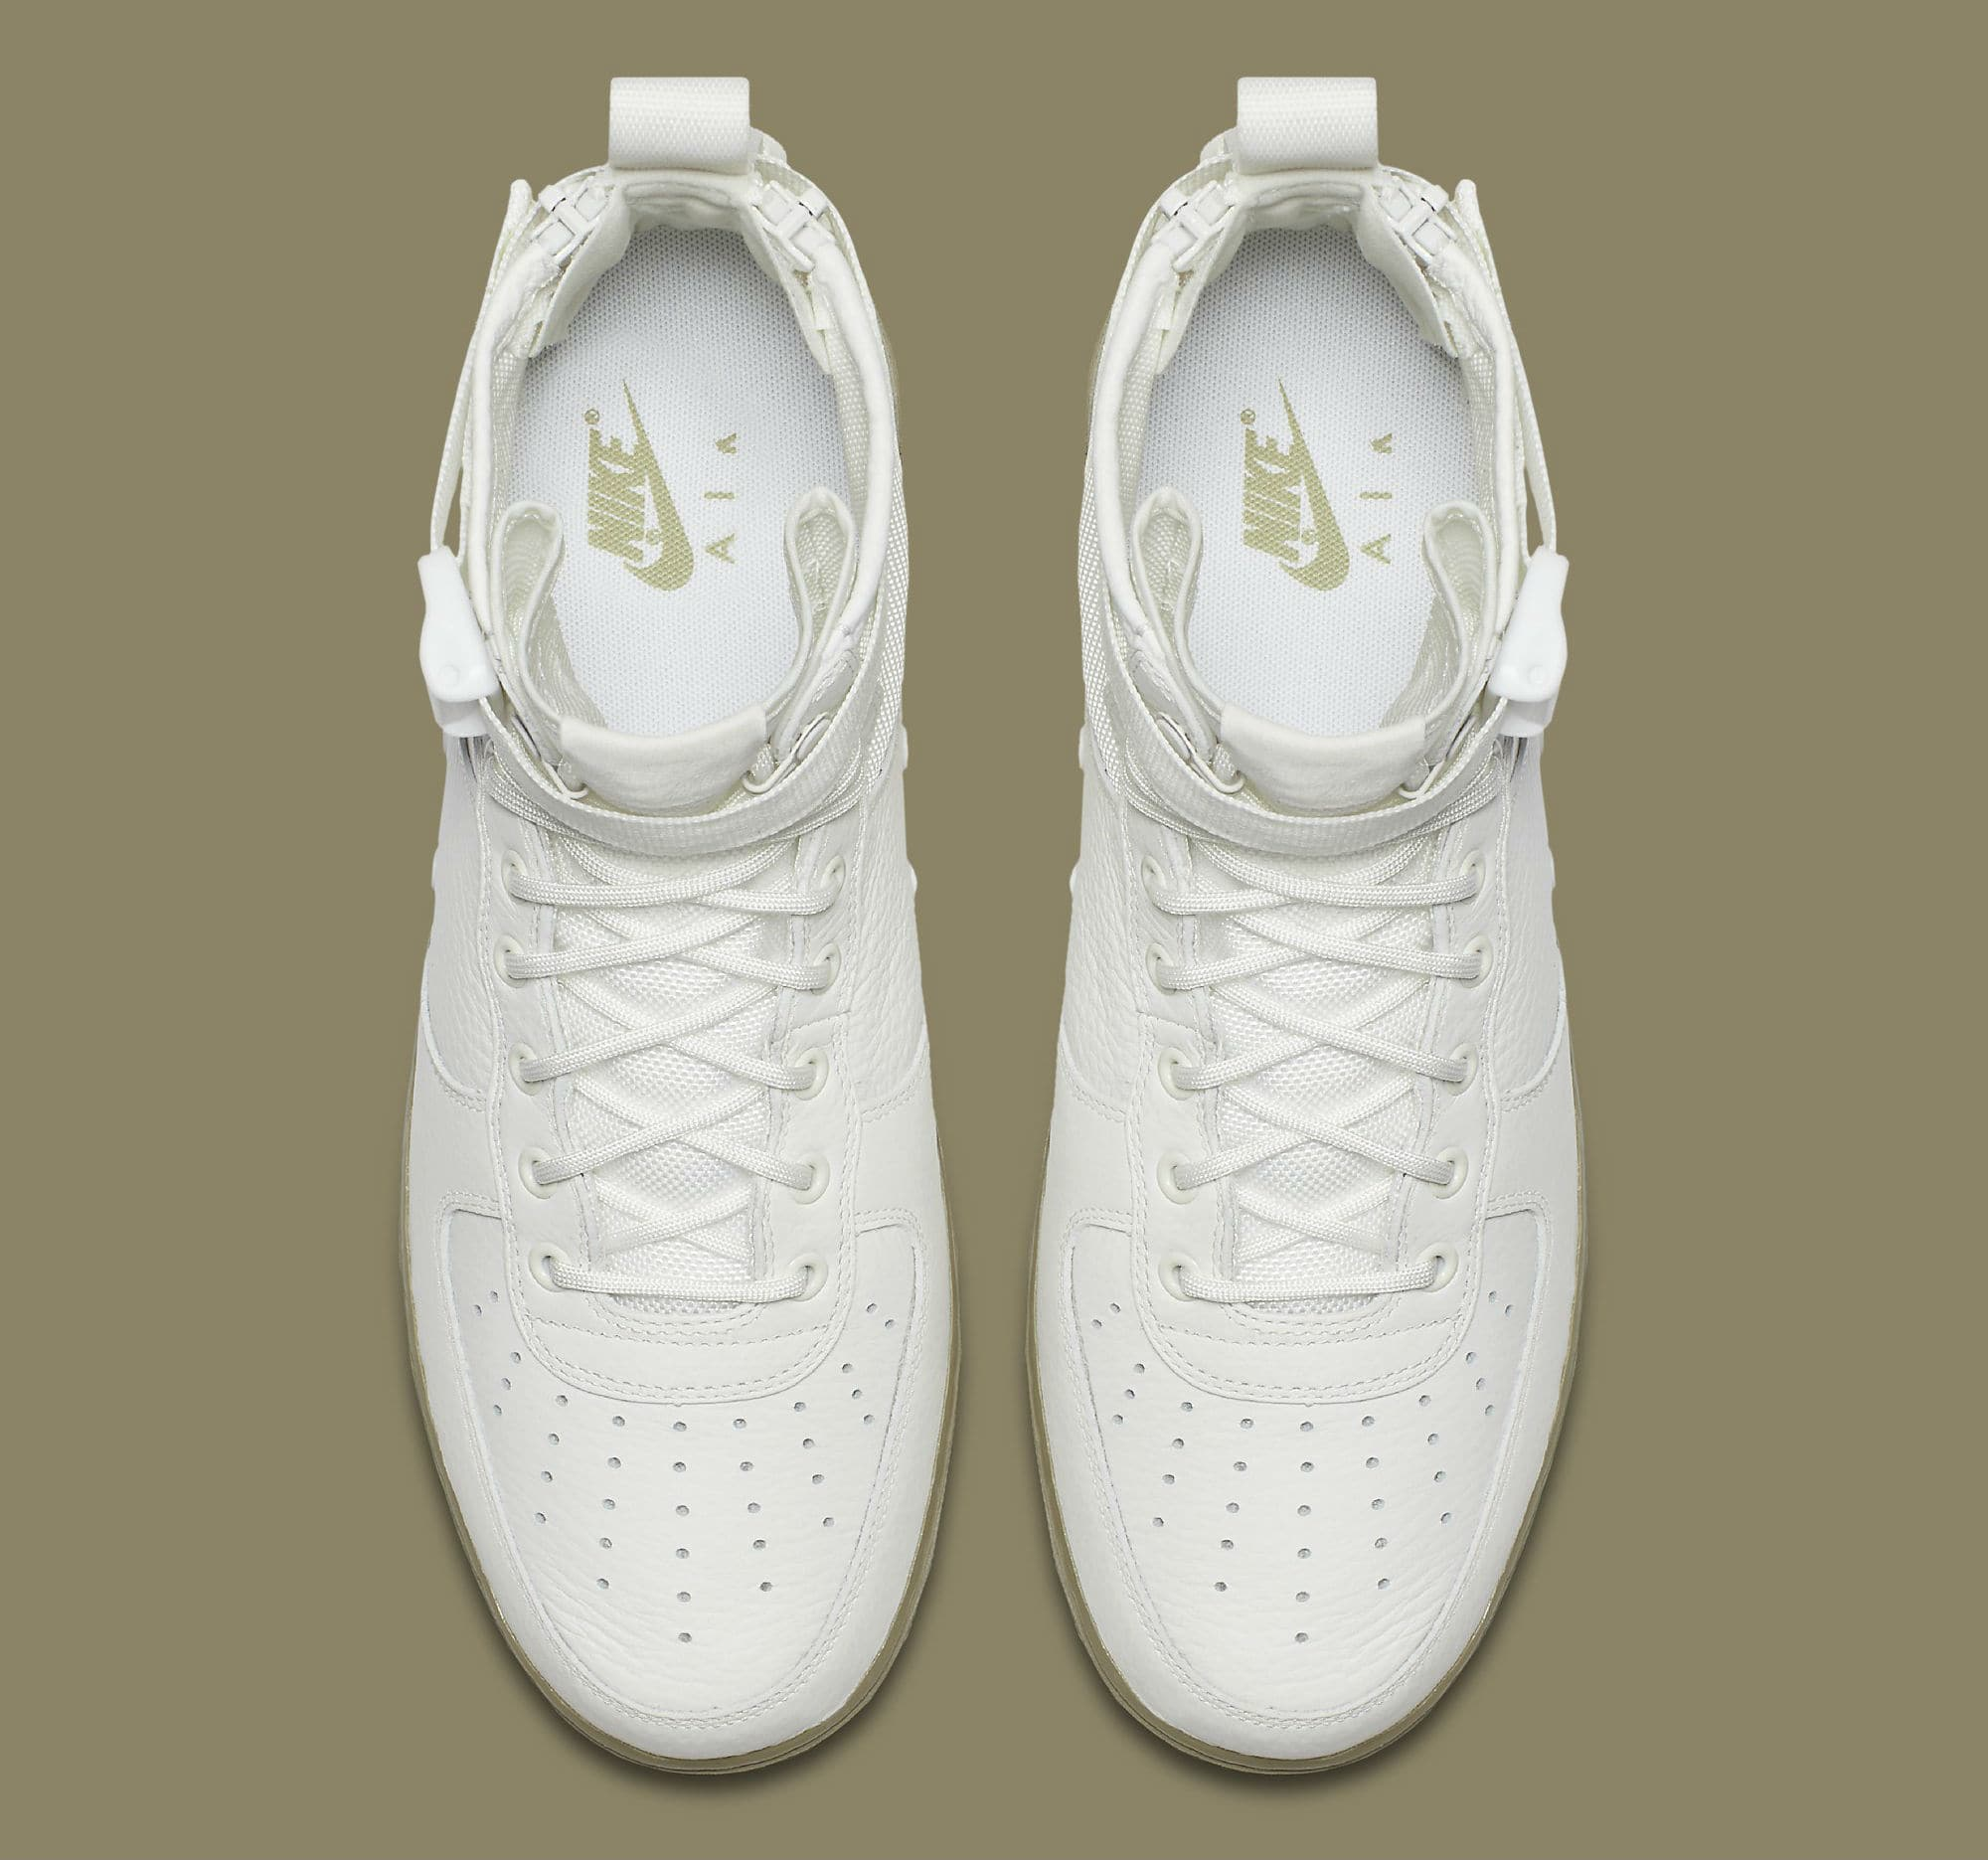 4dc5ea3bd6b ... buy nike sf air force 1 mid ivory neutral olive release date 917753 101  3 c6694